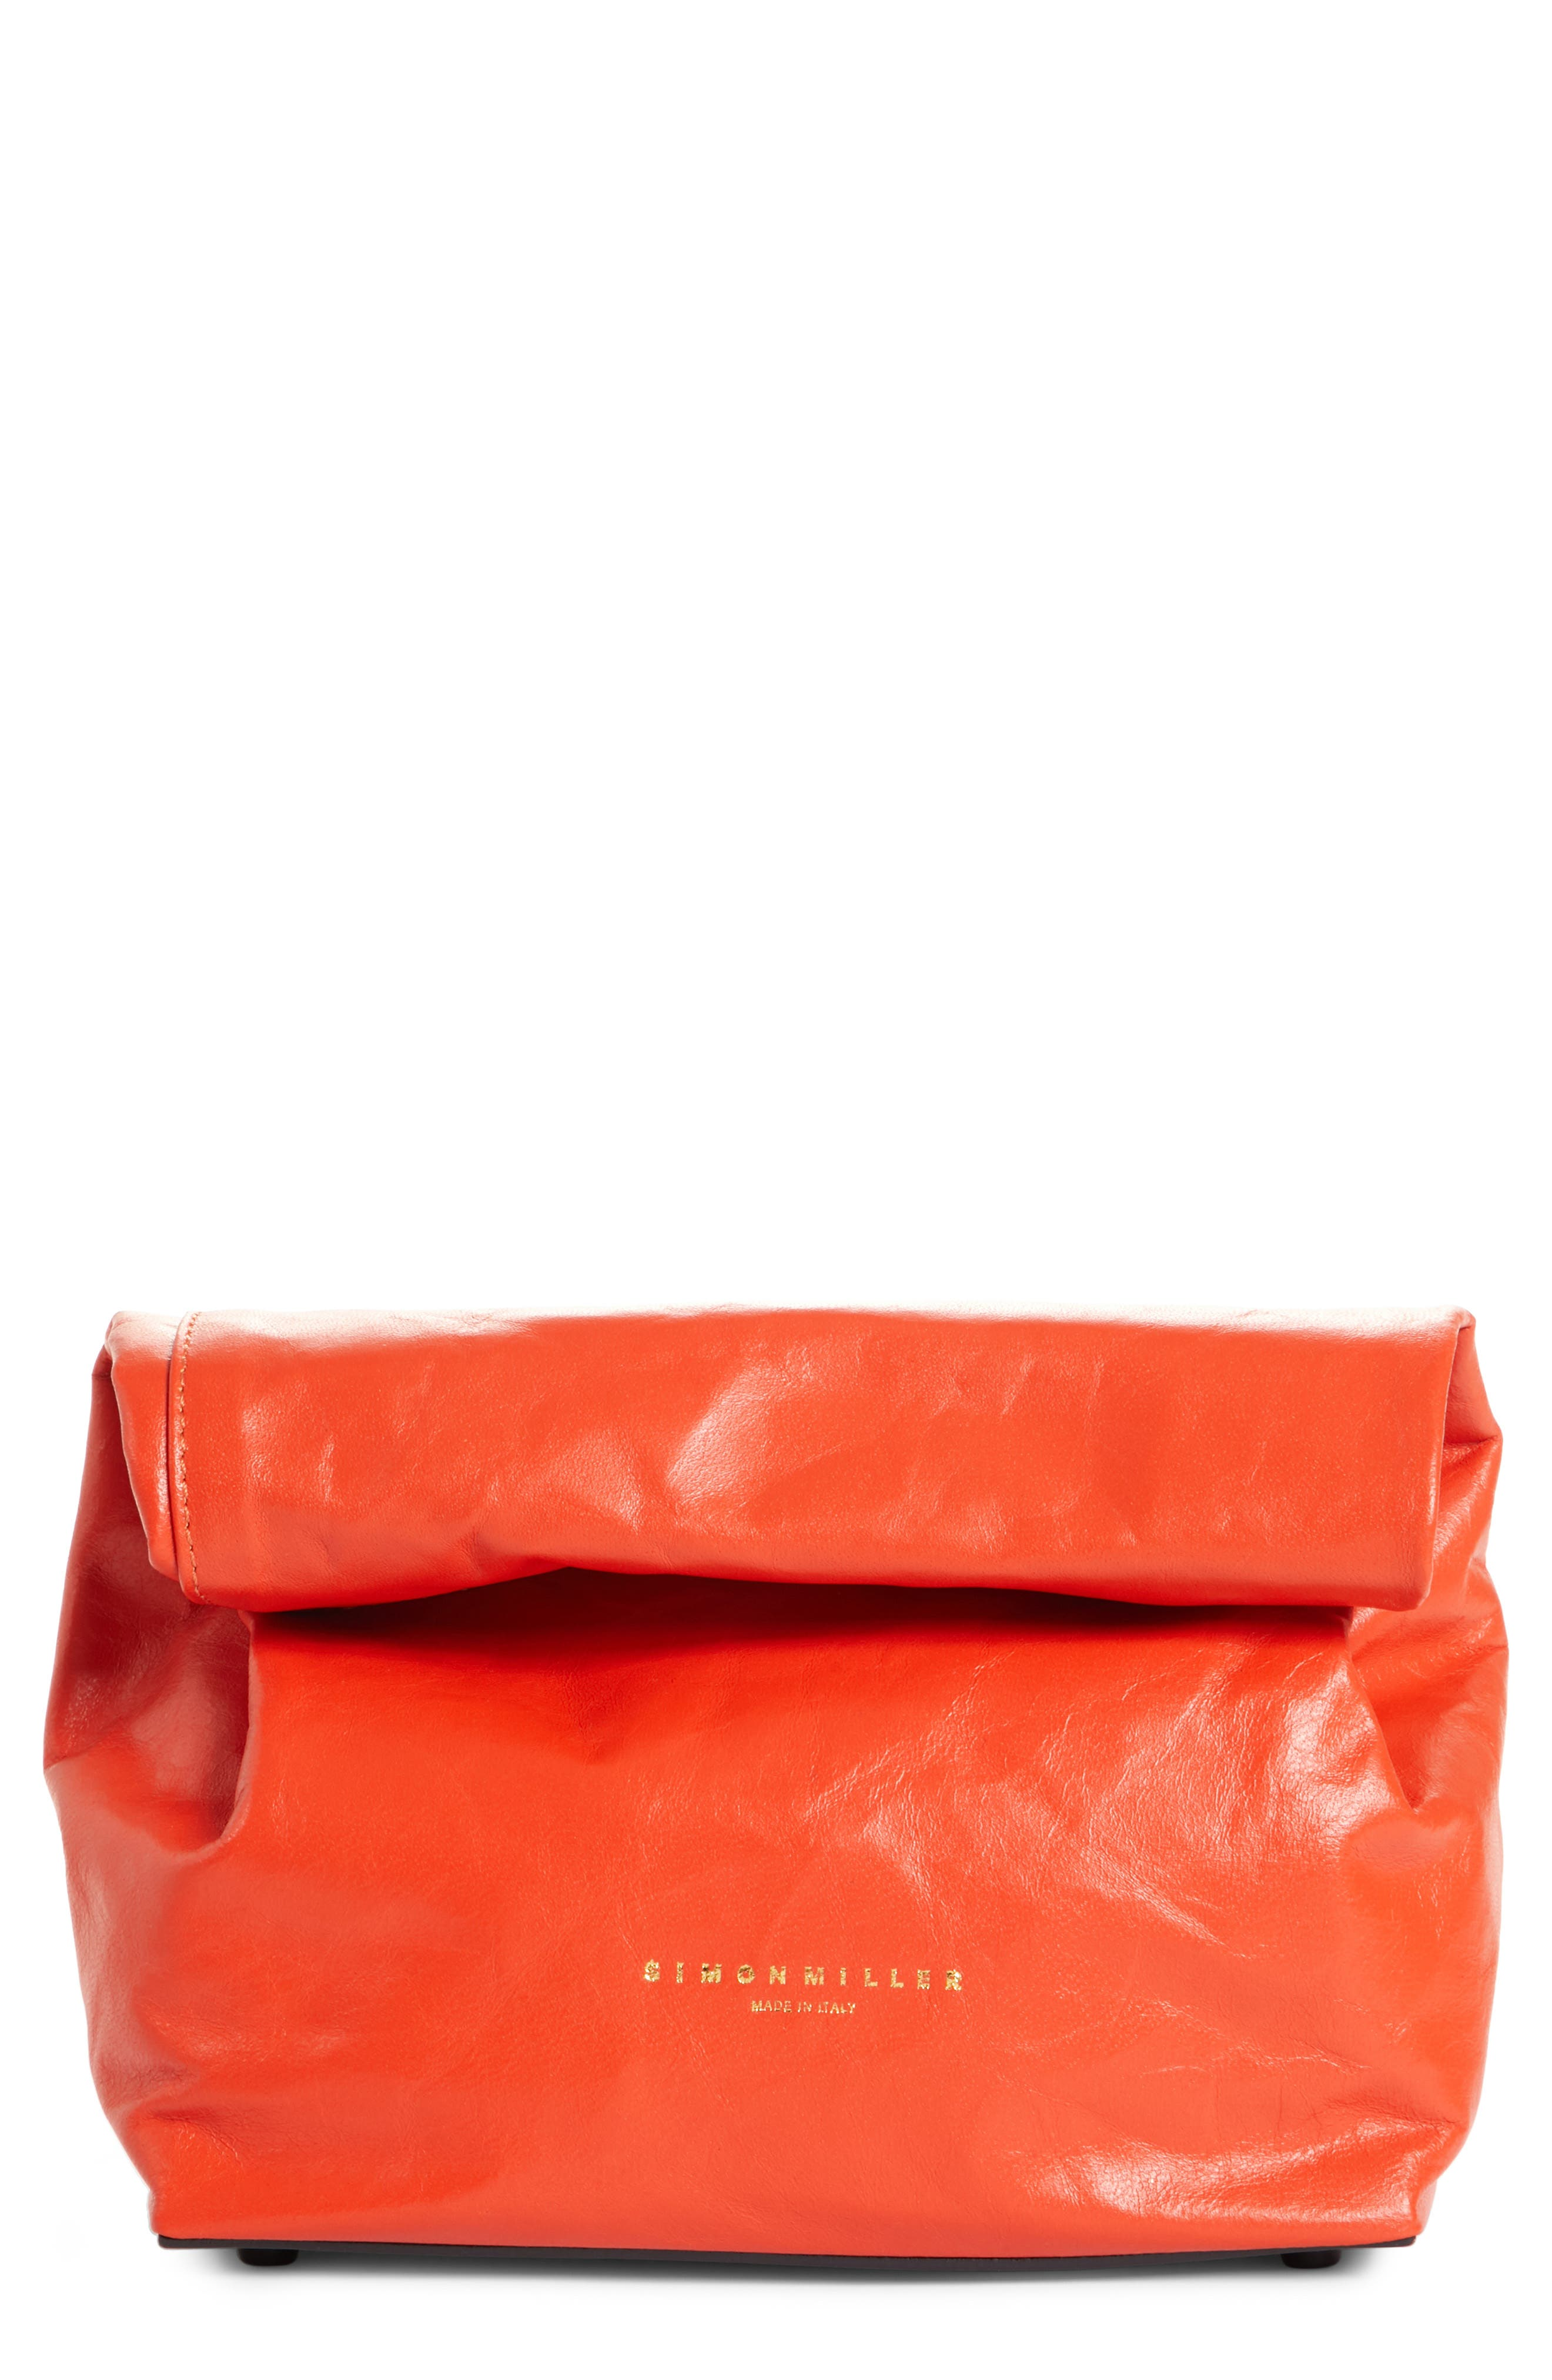 SIMON MILLER Lunchbag Leather Roll Top Clutch, Main, color, 600